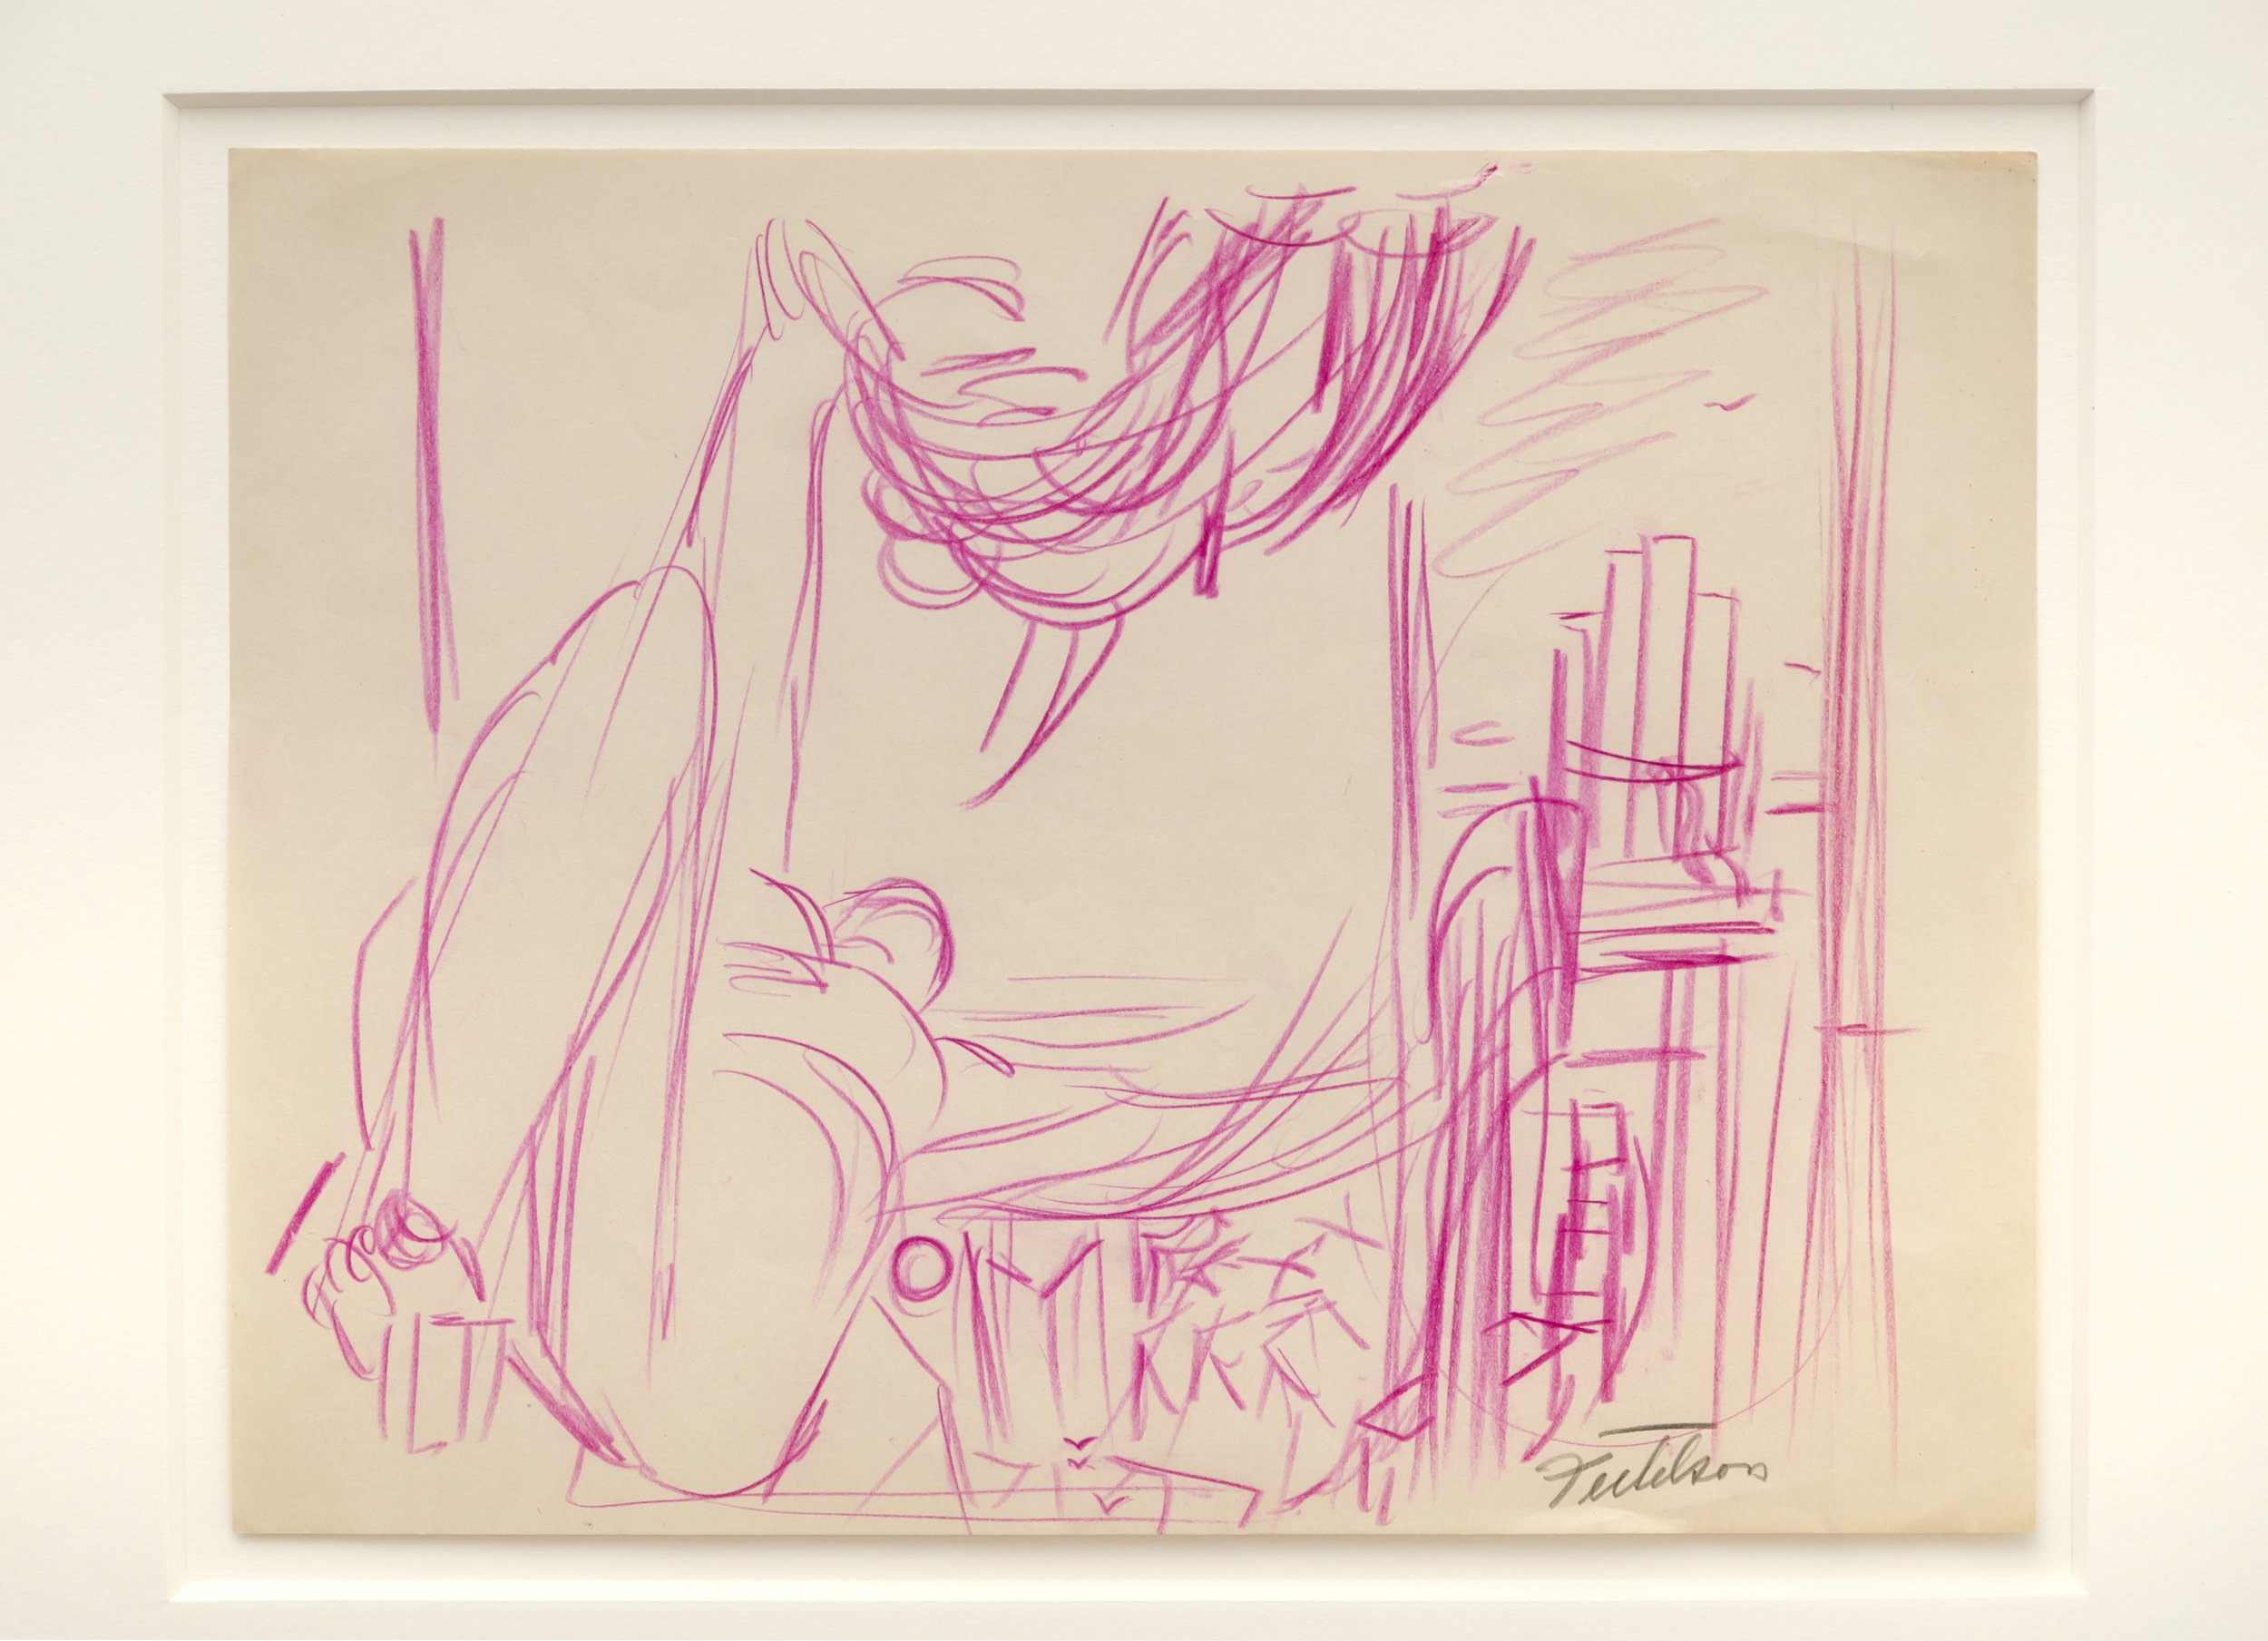 Lorser Feitelson (1898-1978)   Study for Flight Over New York , c. 1935 colored pencil on paper  10 3/4 x 11 inches; 27.3 x 27.9 centimeters